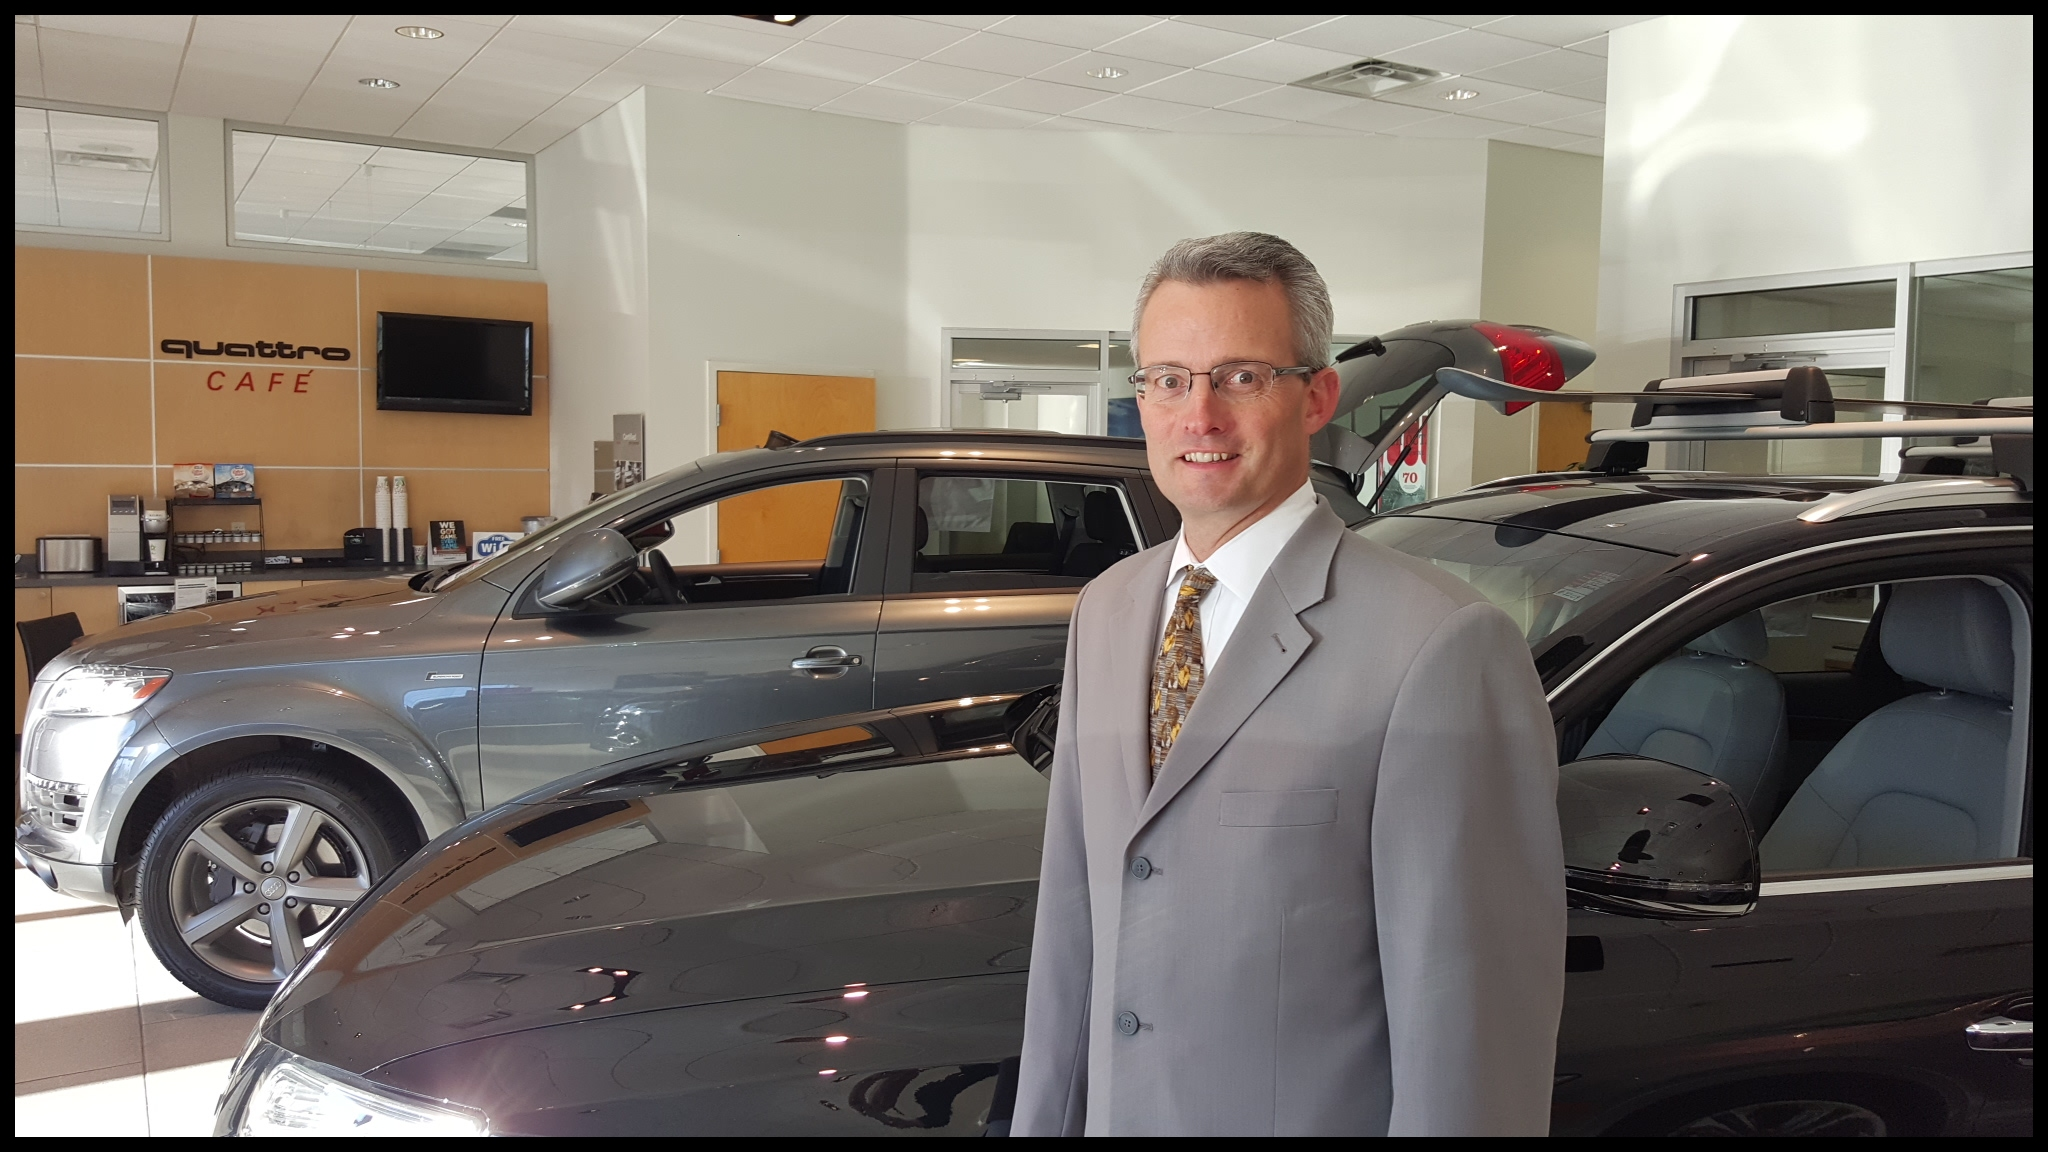 Len Stoler Porsche is pleased to introduce our new General Manager Dave McBrearty Dave brings over 29 years of automotive experience to the Len Stoler